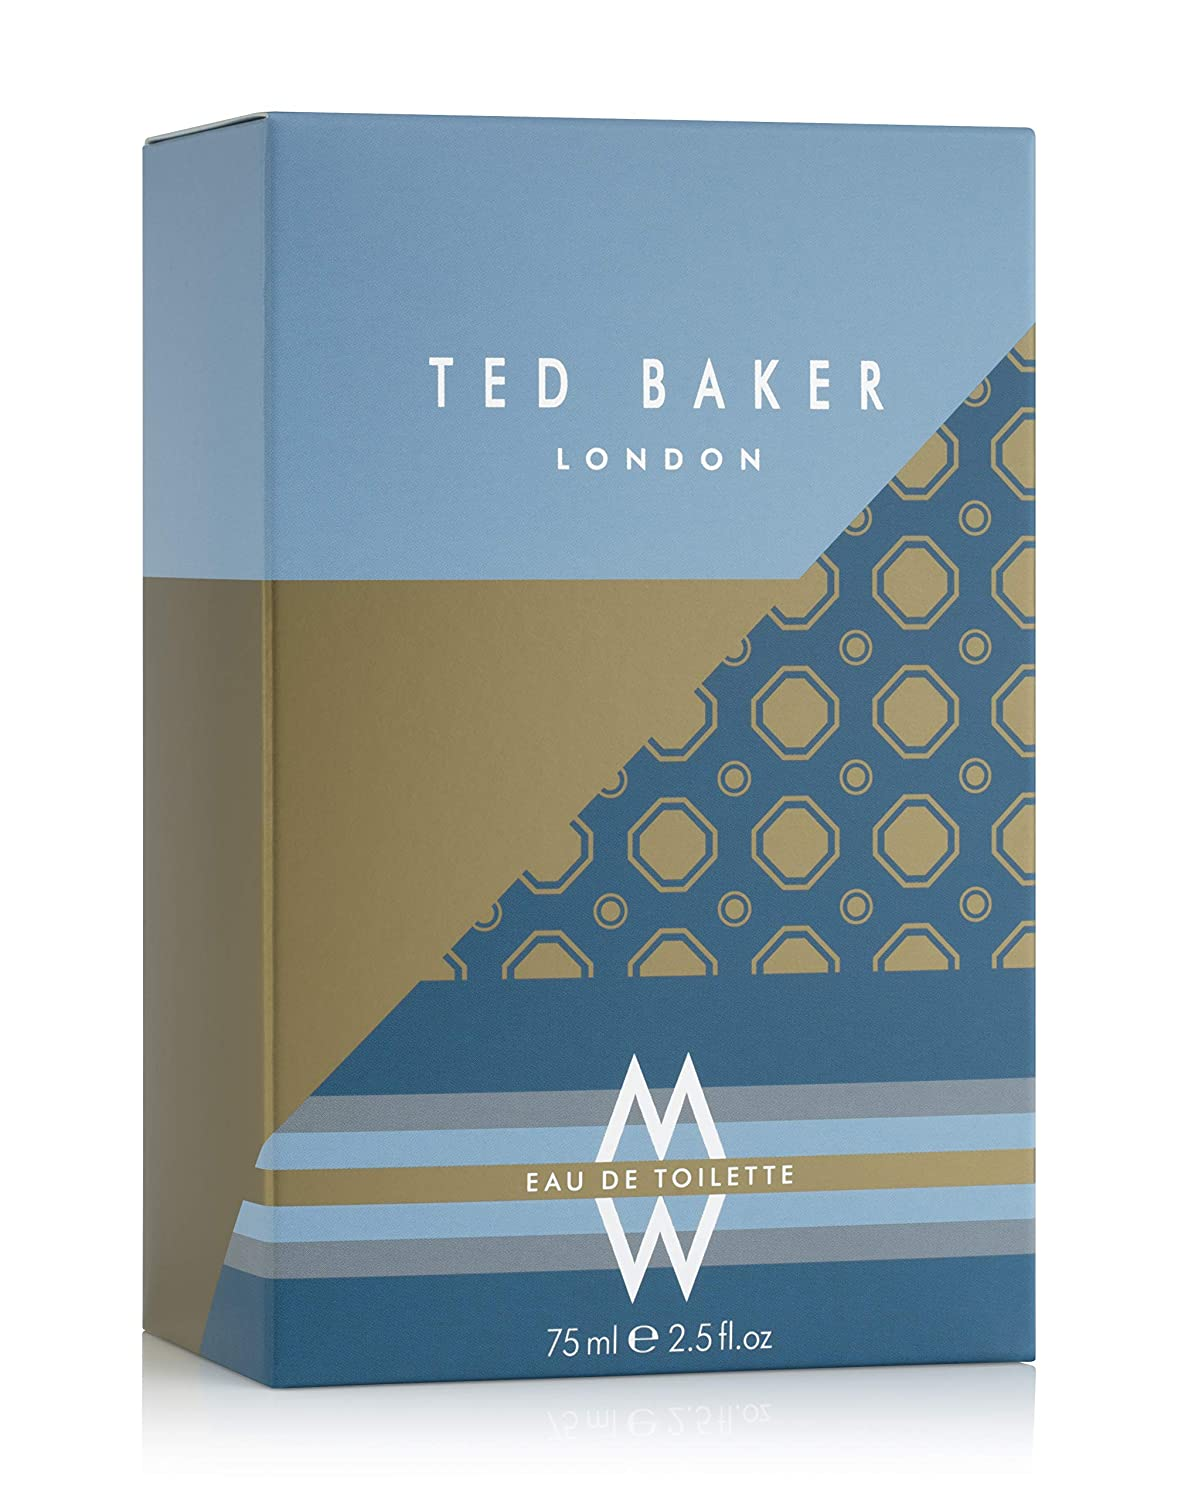 893475b3354a Ted Baker Eau de Toilette Spray for Men 75 ml  Amazon.co.uk  Beauty